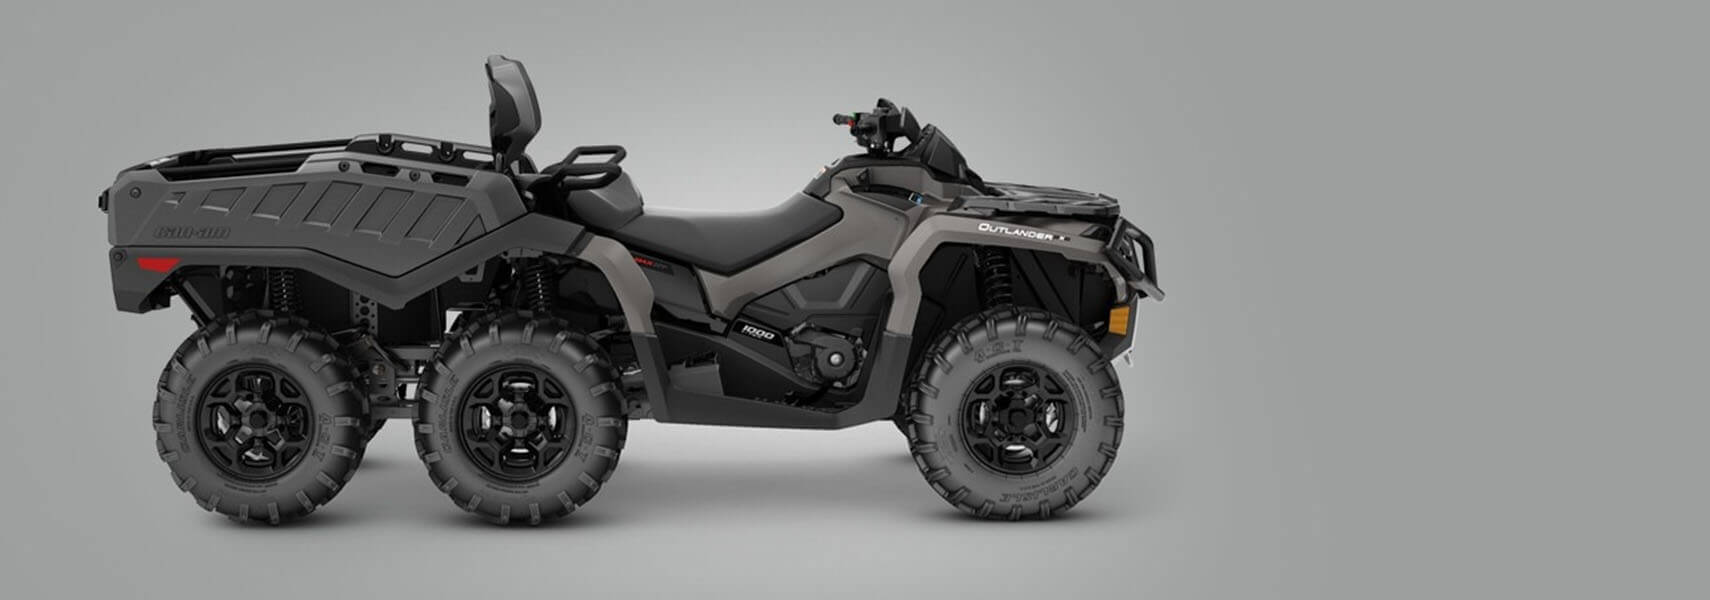 Can-Am ATV - 2020 OUTLANDER 6X6 PRO+ SIDEWALL / FARMER 650/1000 T